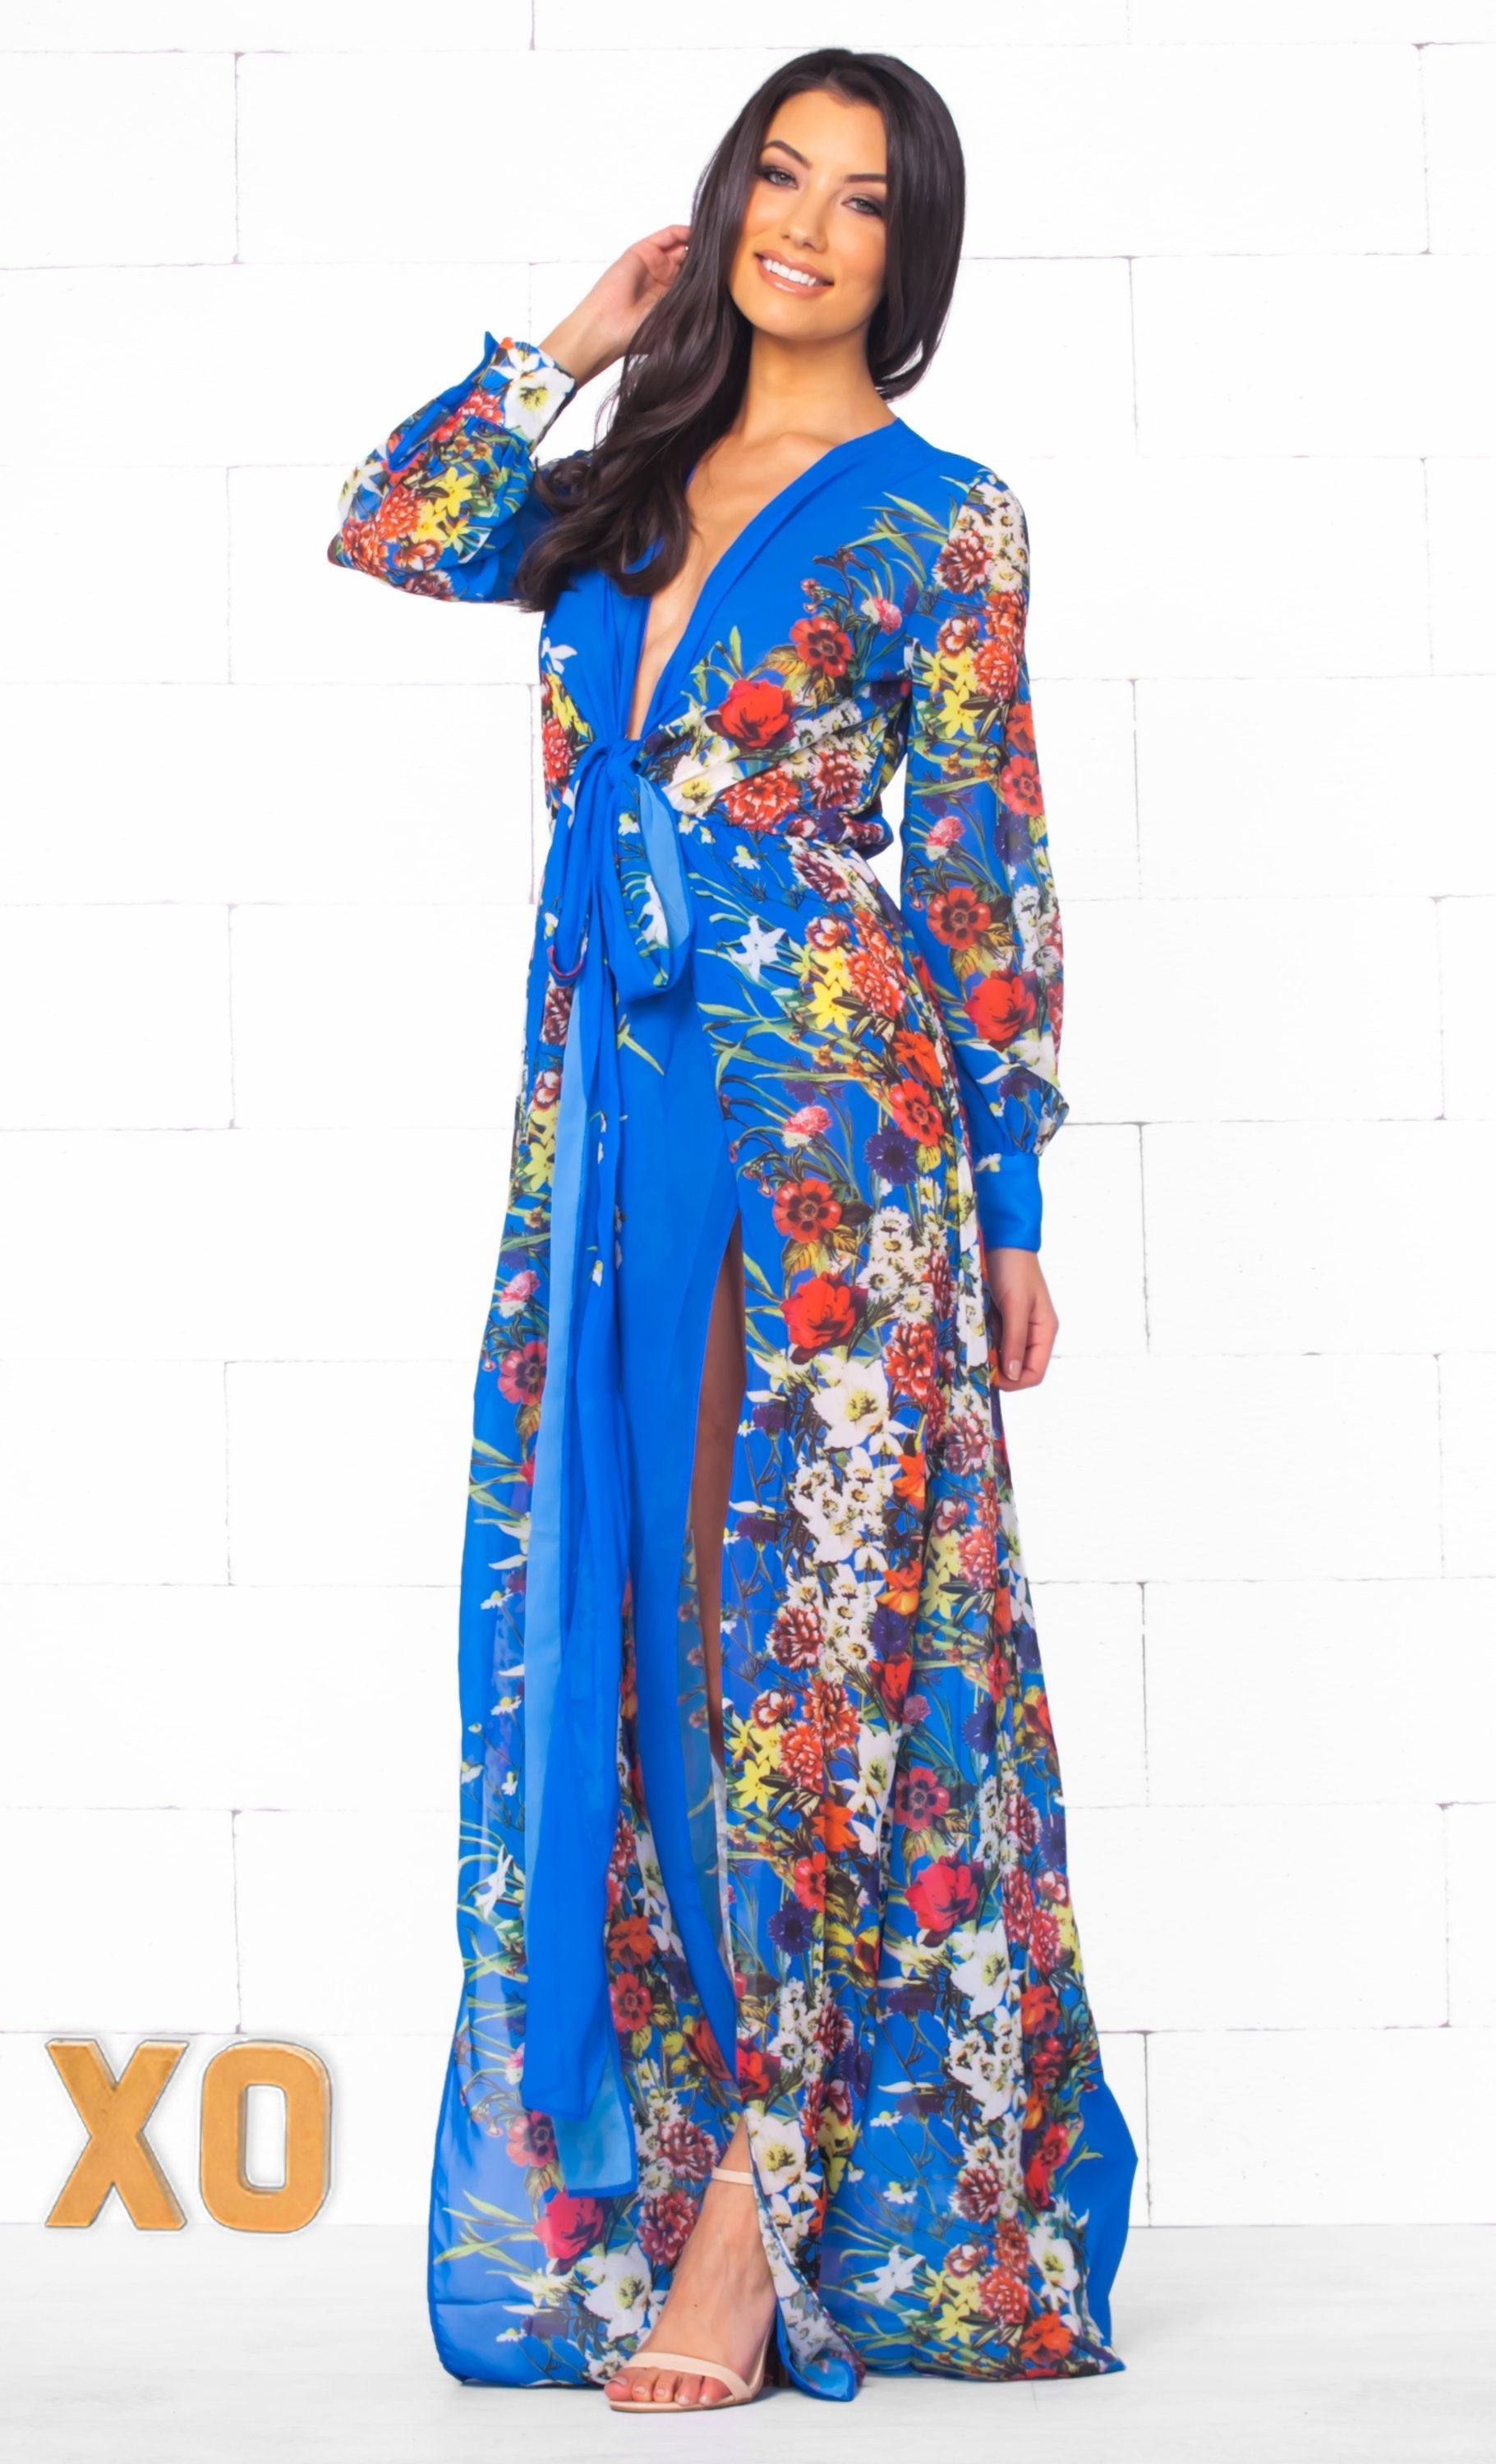 Indie XO Tropical Paradise Blue Blue Red Pink Green Beige White Floral Long Sleeve Plunge V Neck High Slit Chiffon Maxi Dress - Just Ours! - Sold Out